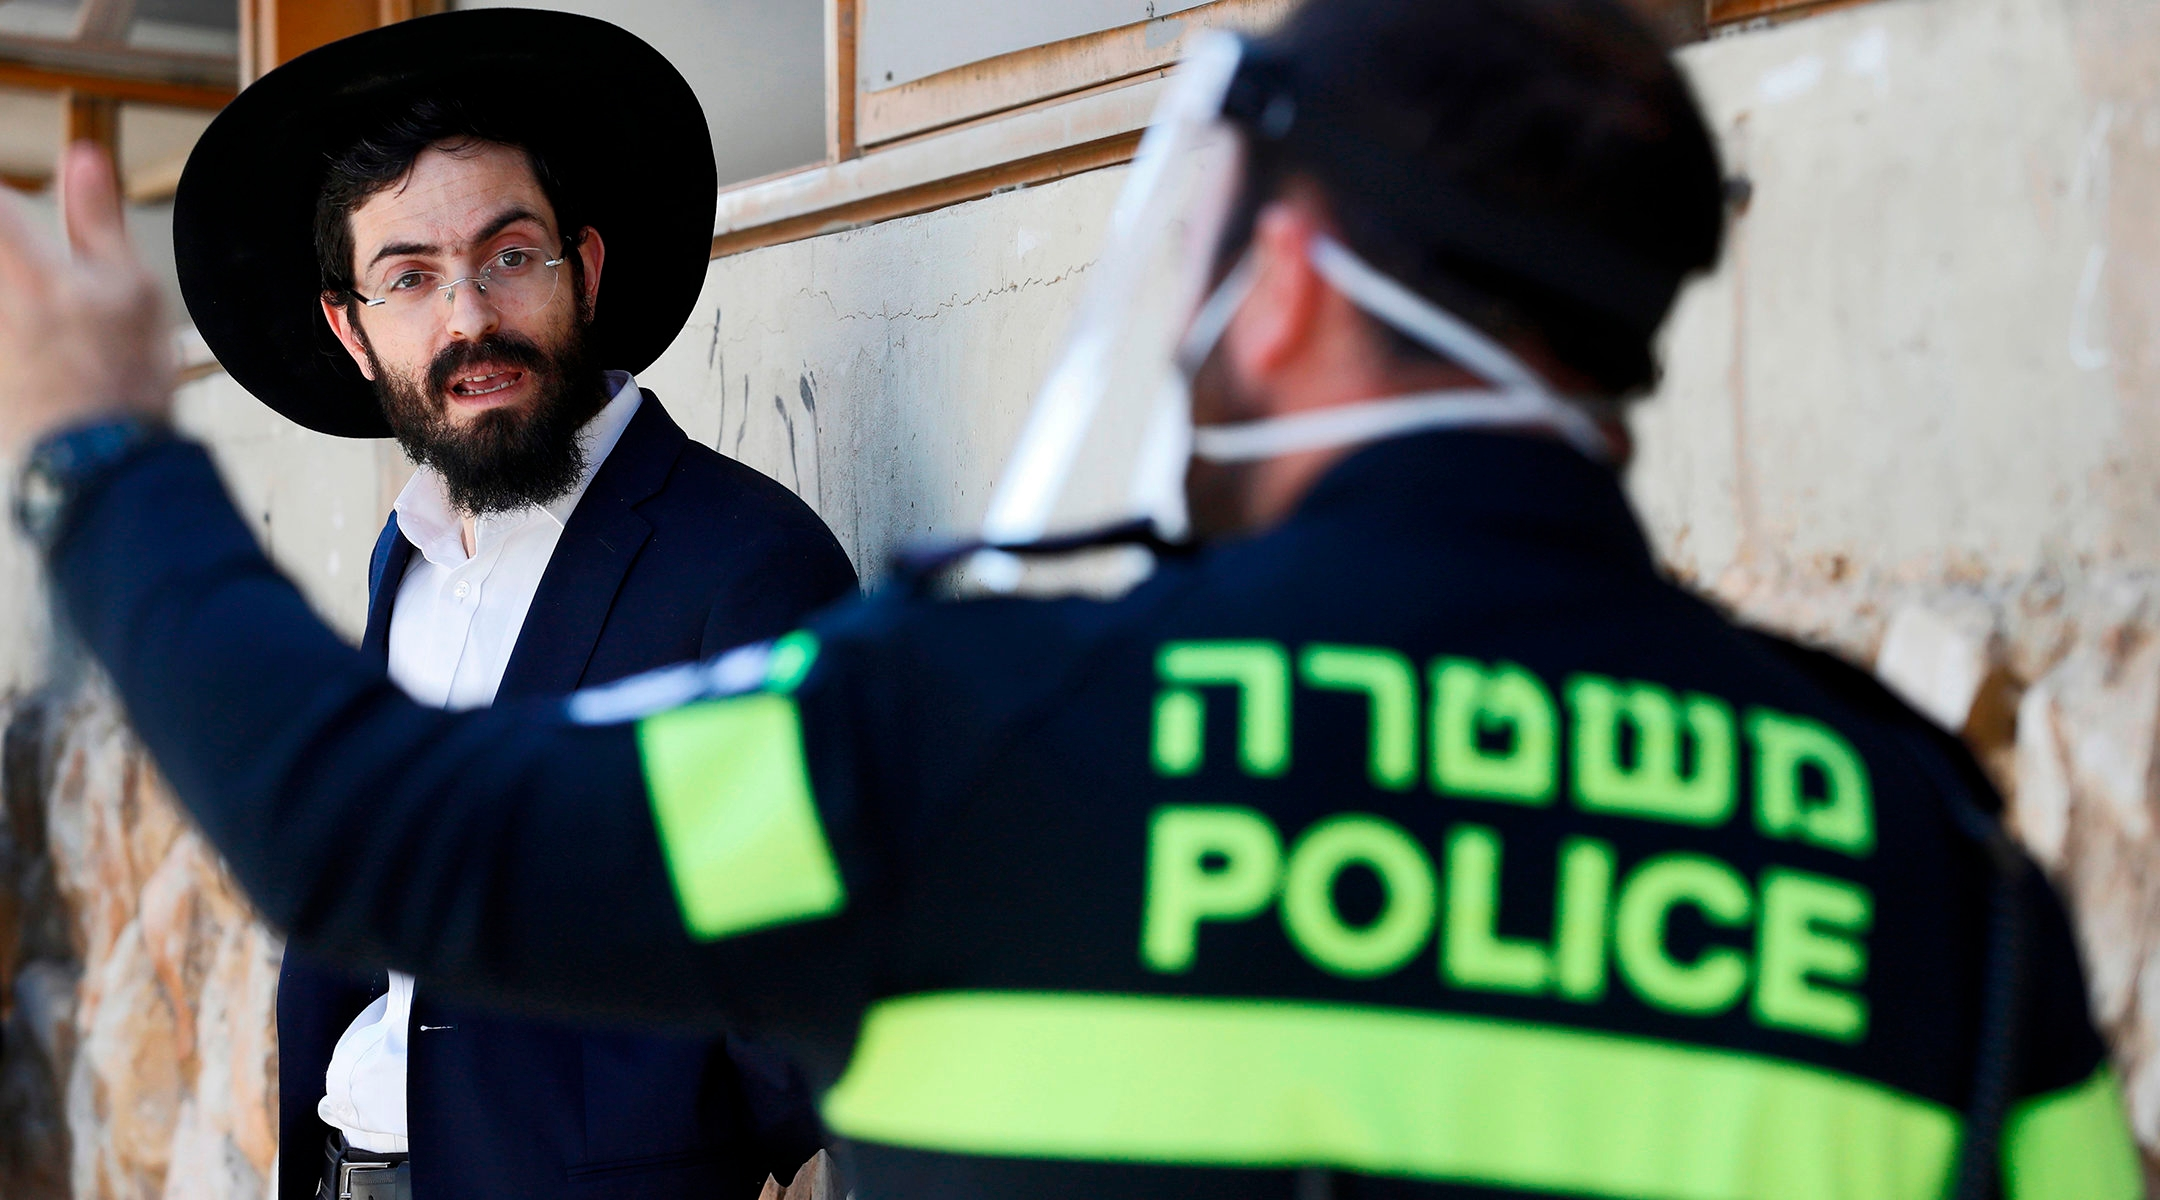 Israeli police officer speaking to a haredi student in Bnei Brak, Israel on April 2, 2020.(Jack Guez/AFP/Getty Images)